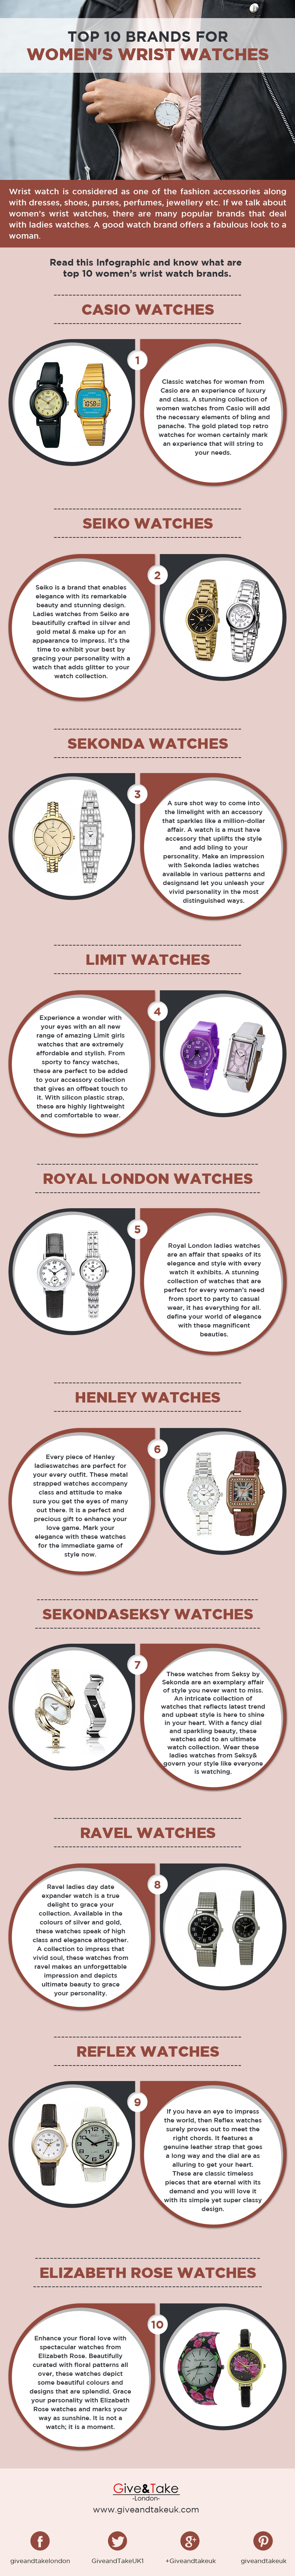 Top 10 Brands for Women's Wrist Watches [Infographic]